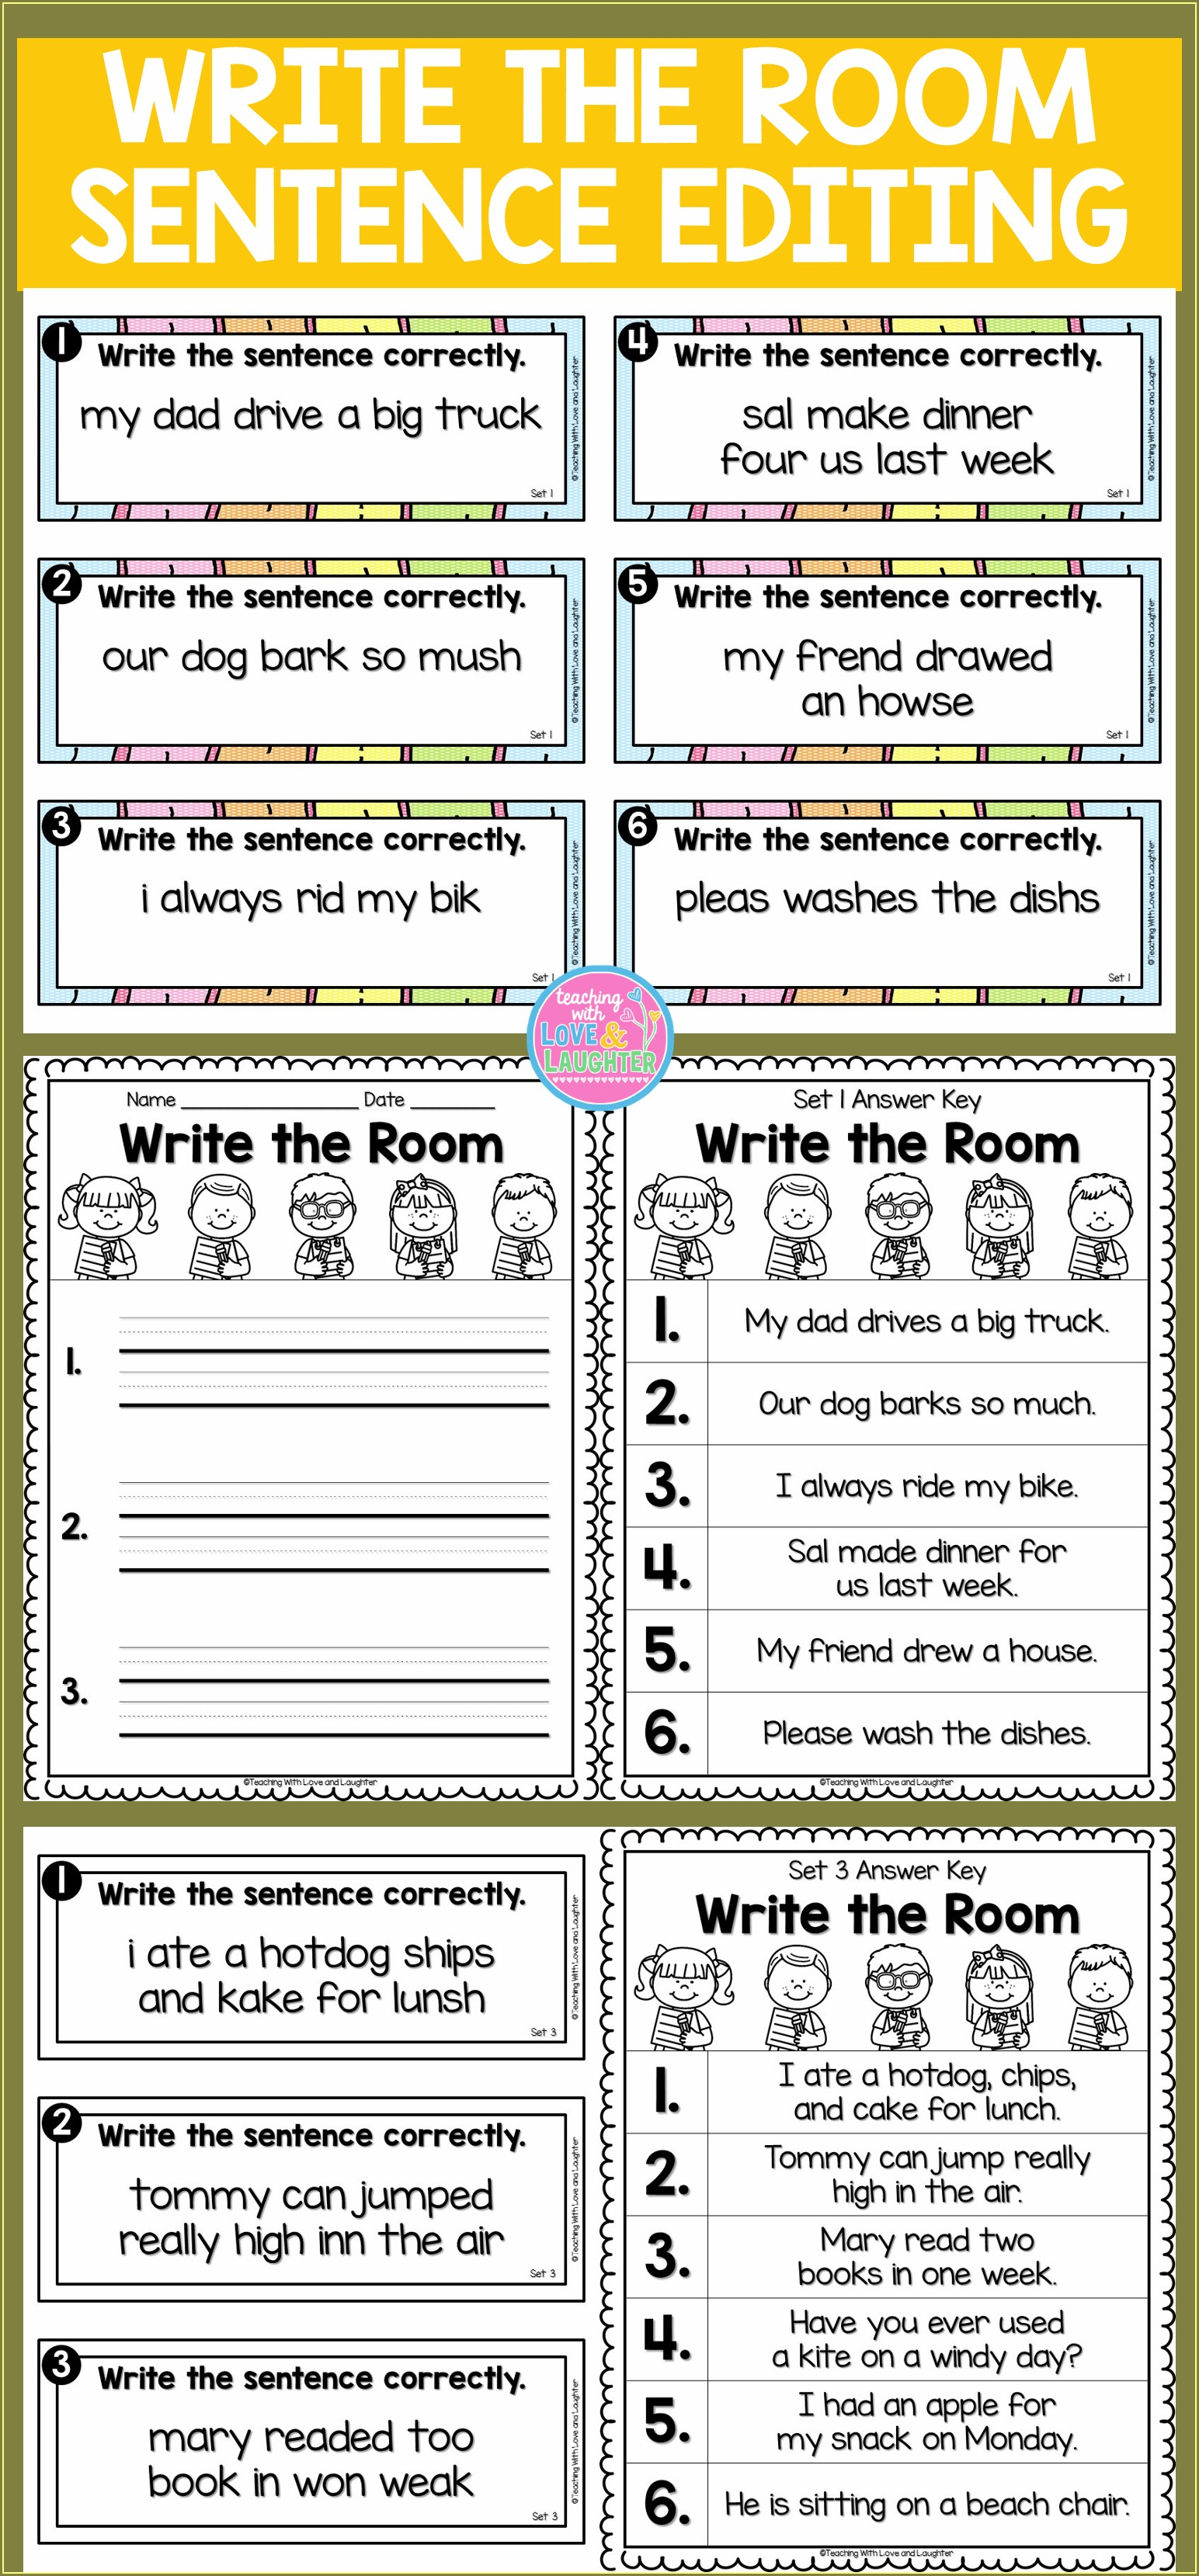 Spelling 5 Times Each Worksheet